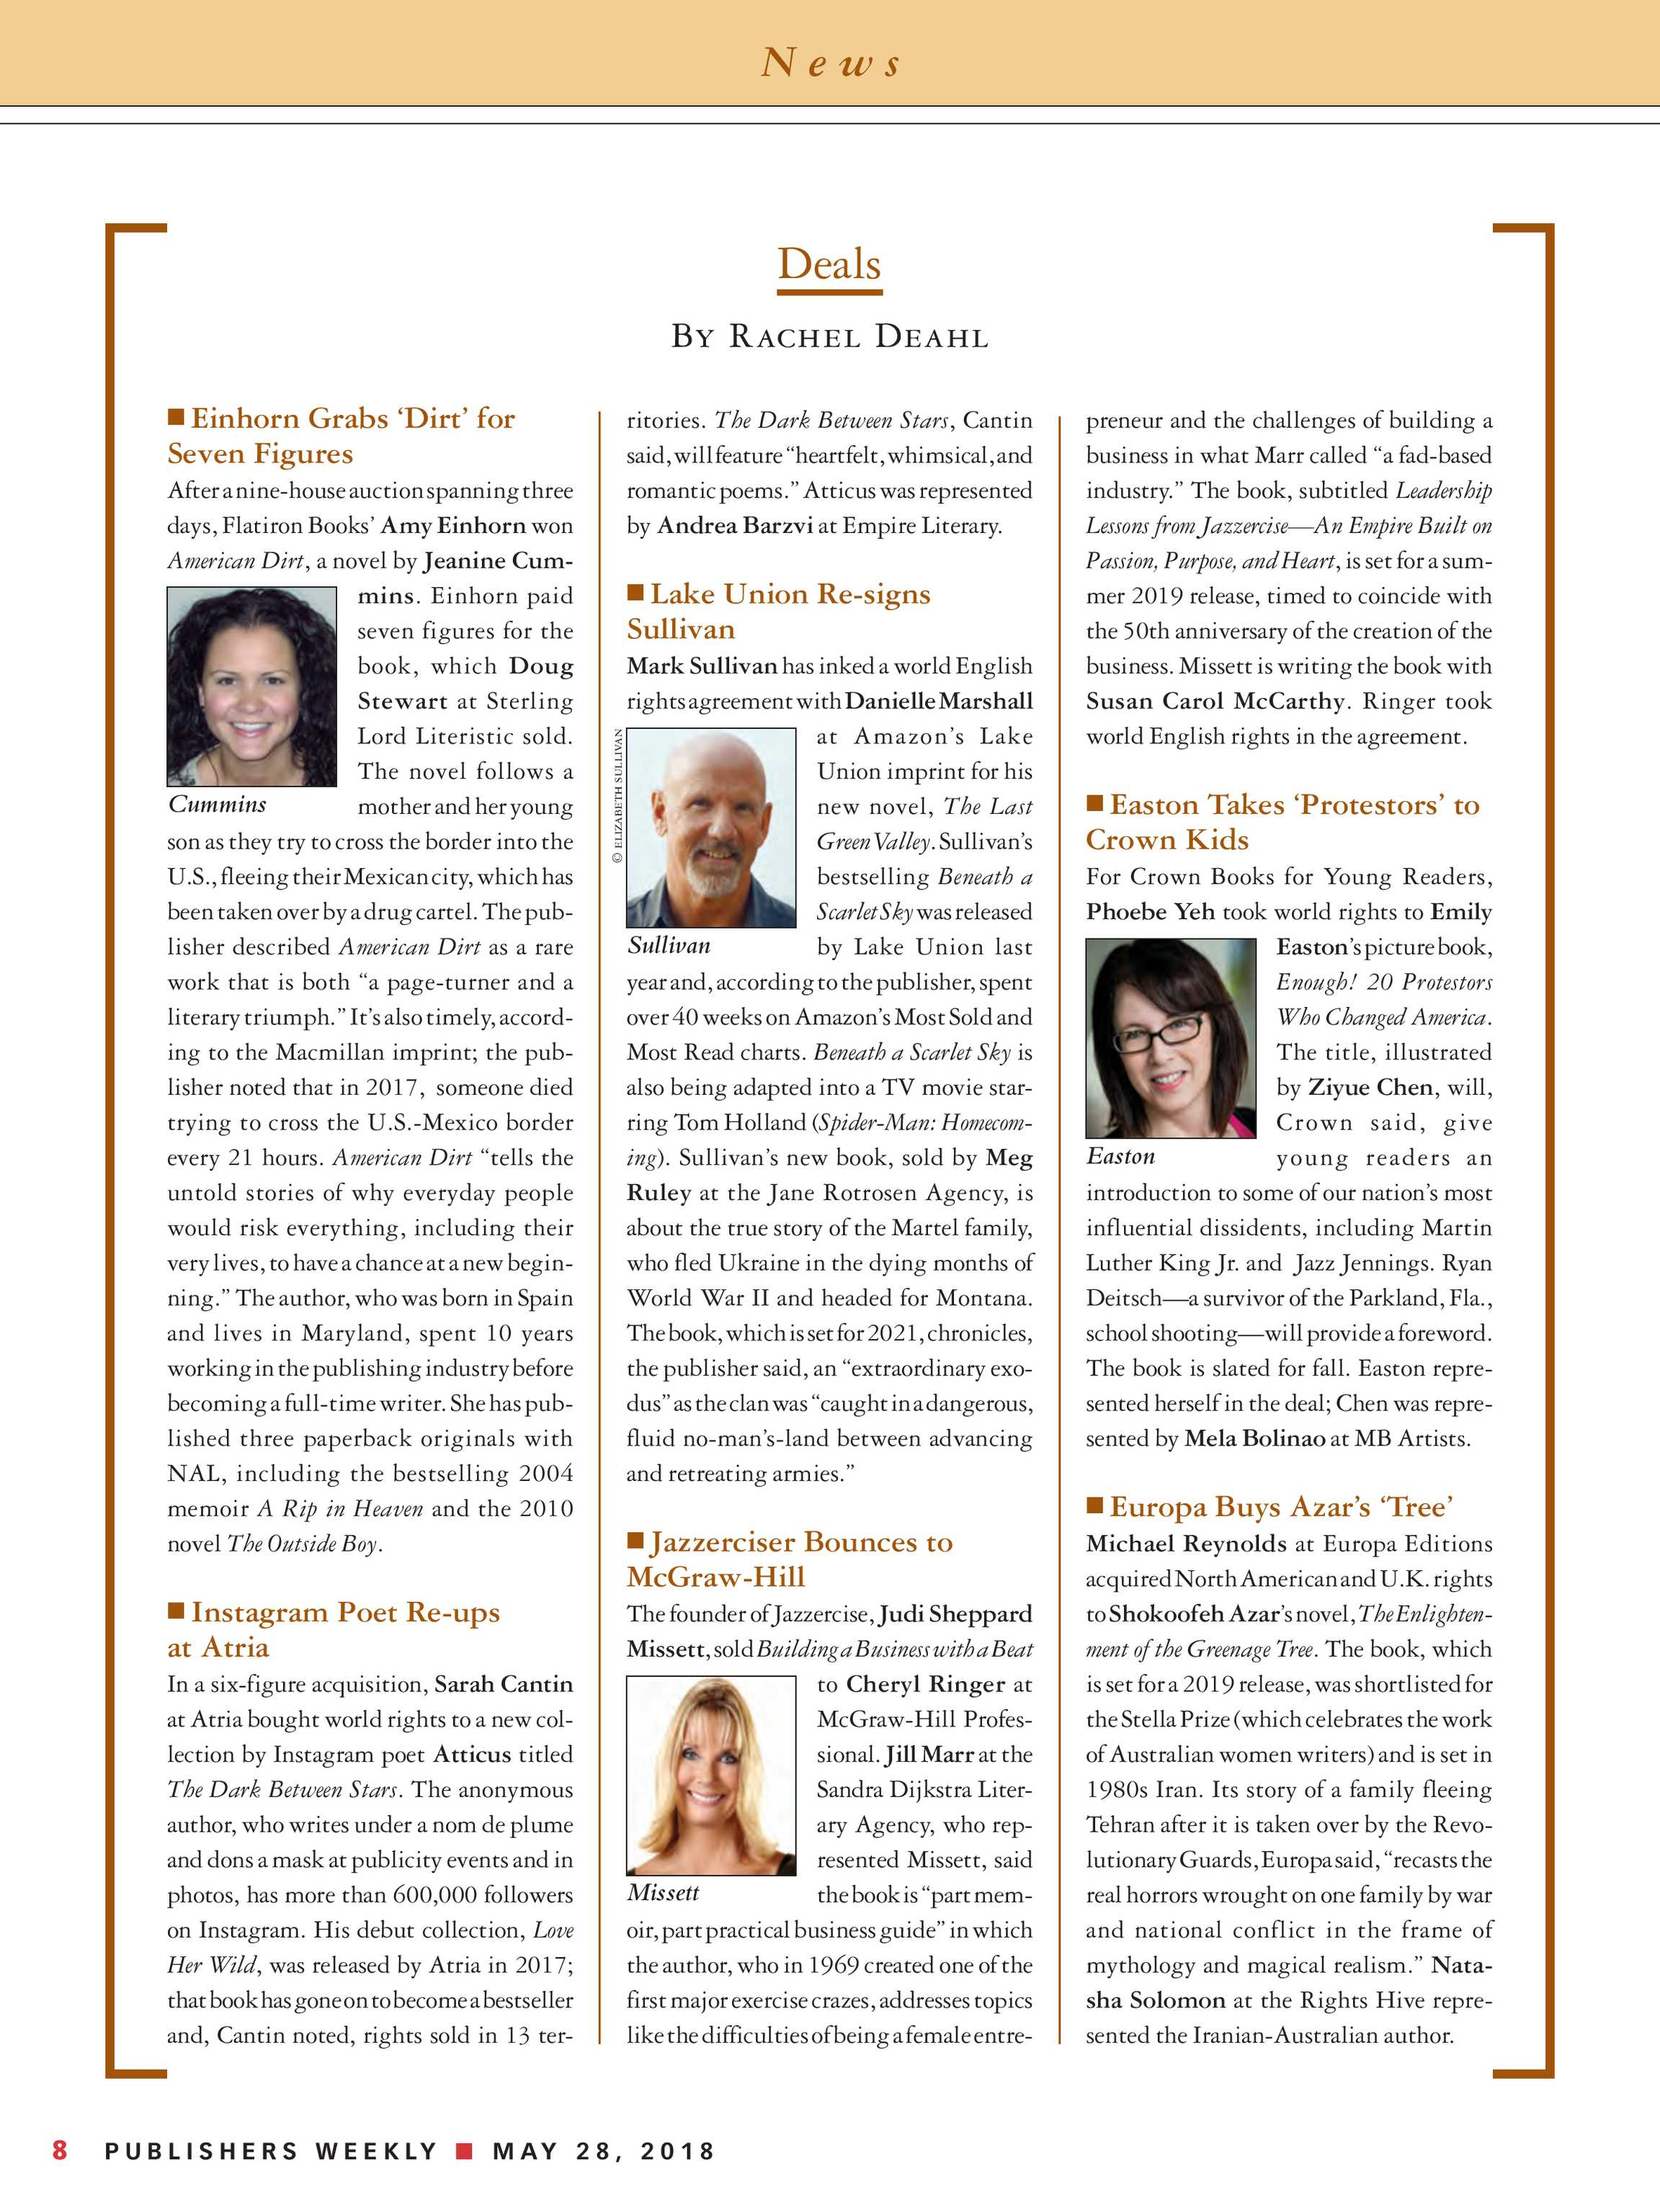 Publishers Weekly May 28 2018 Page 8